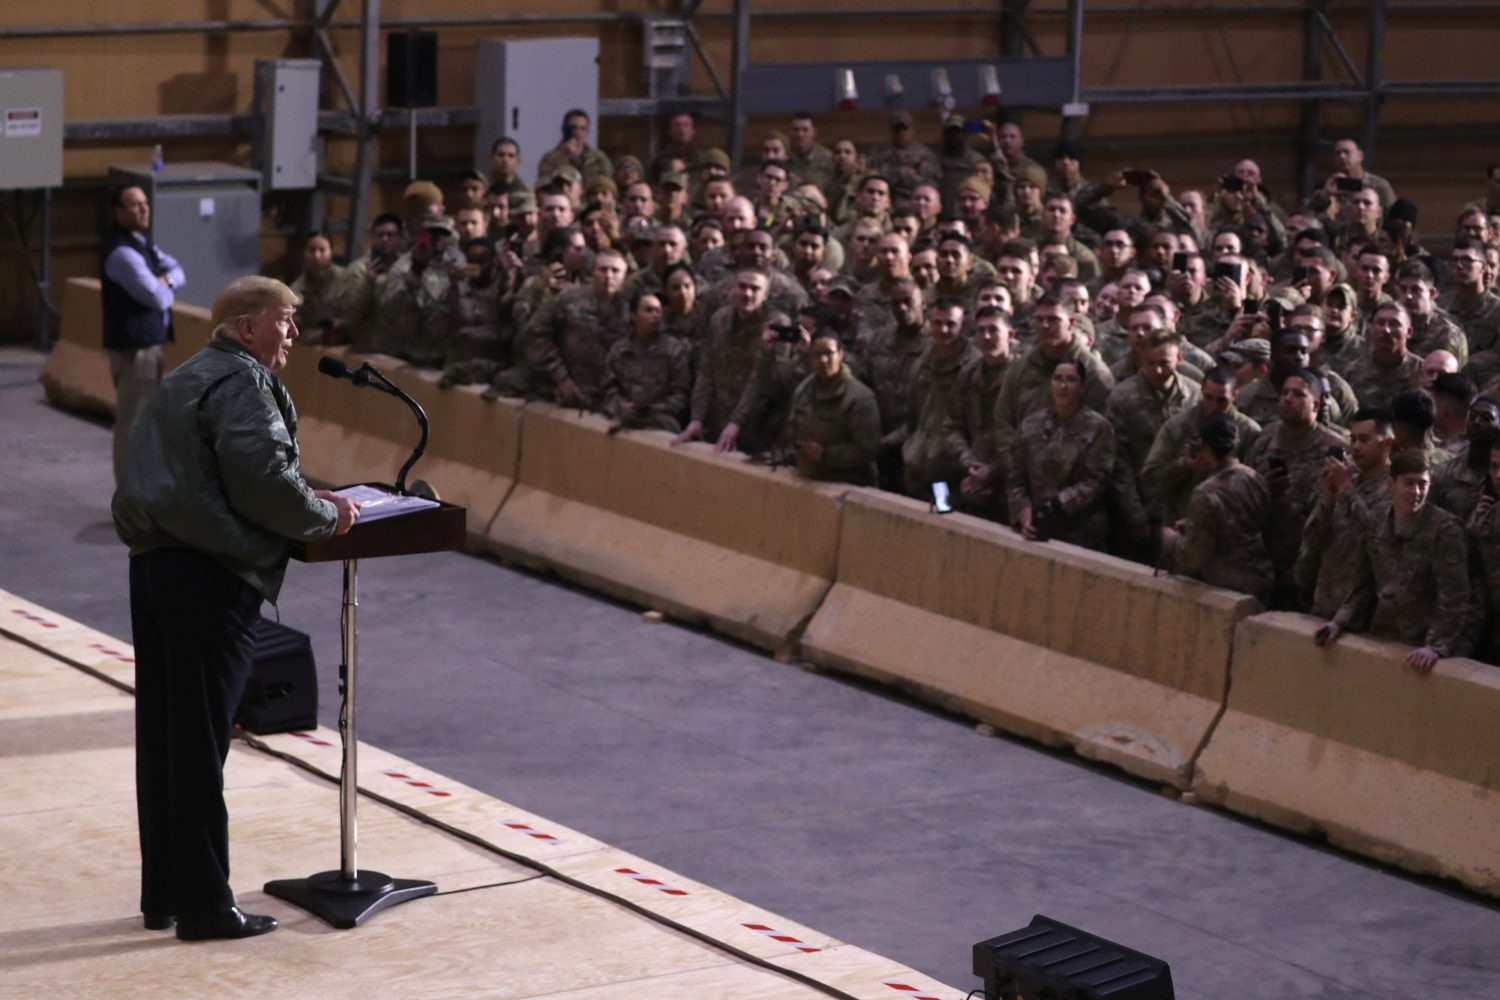 FILE PHOTO: U.S. President Donald Trump delivers remarks to U.S. troops in an unannounced visit to Al Asad Air Base, Iraq December 26, 2018. REUTERS/Jonathan Ernst